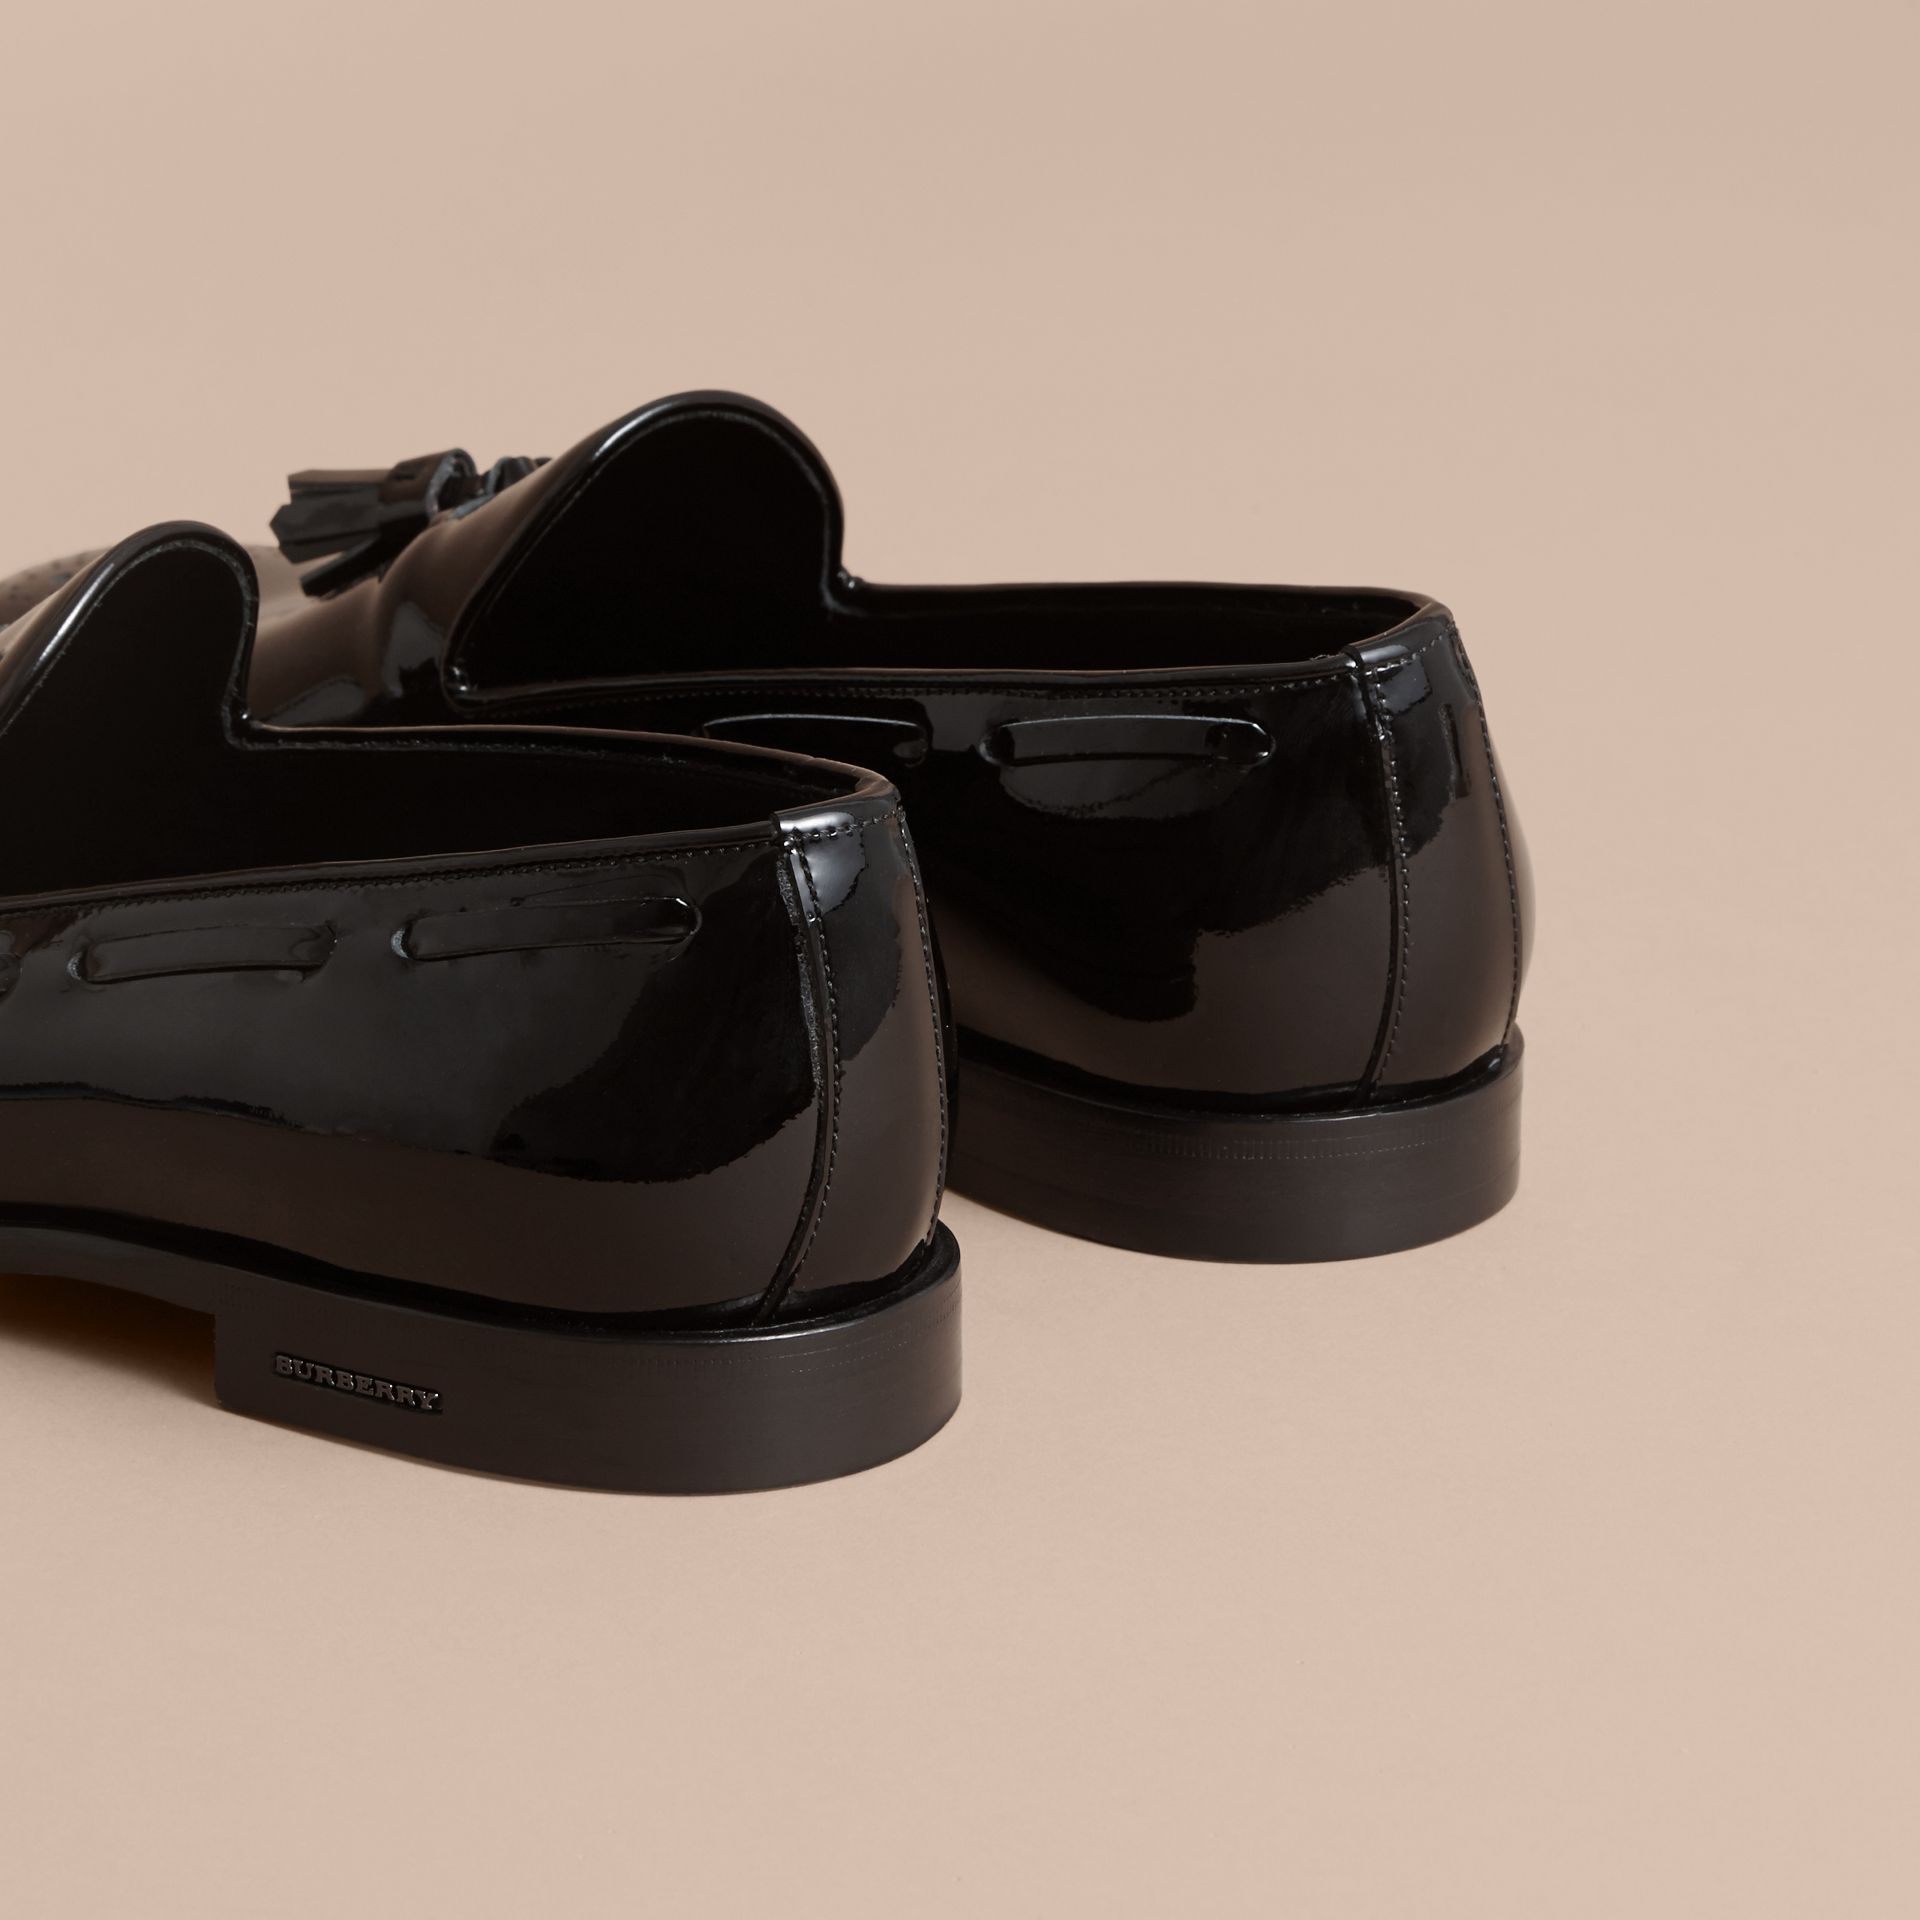 Tasselled Patent Leather Loafers in Black - Men | Burberry Hong Kong - gallery image 3